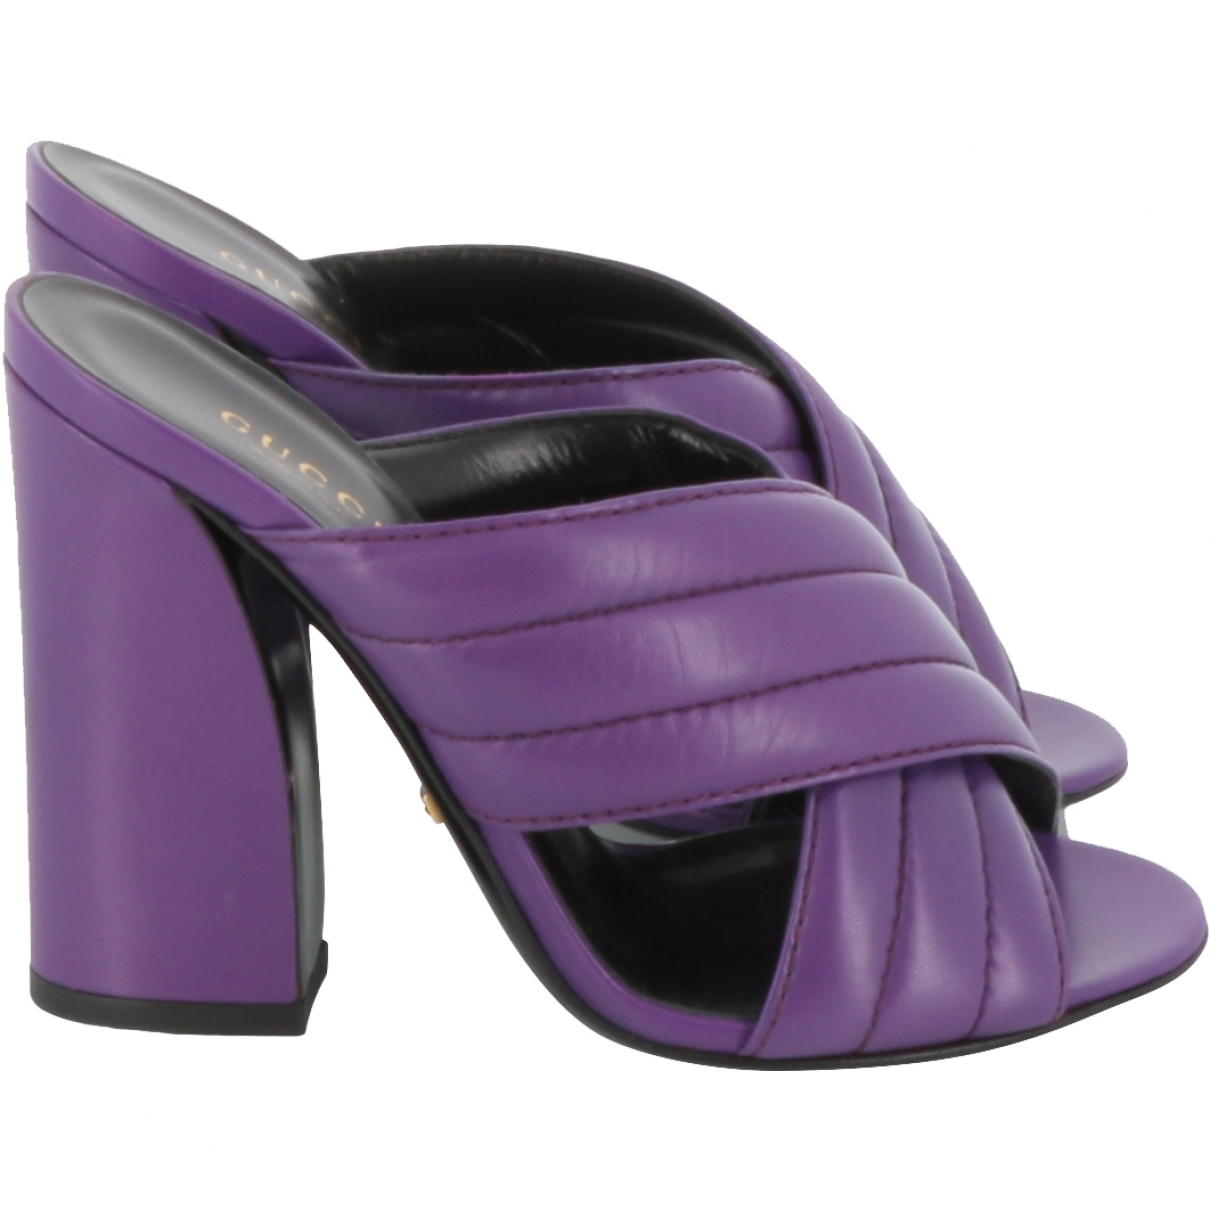 Gucci \N Purple Leather Sandals for Women 36 EU